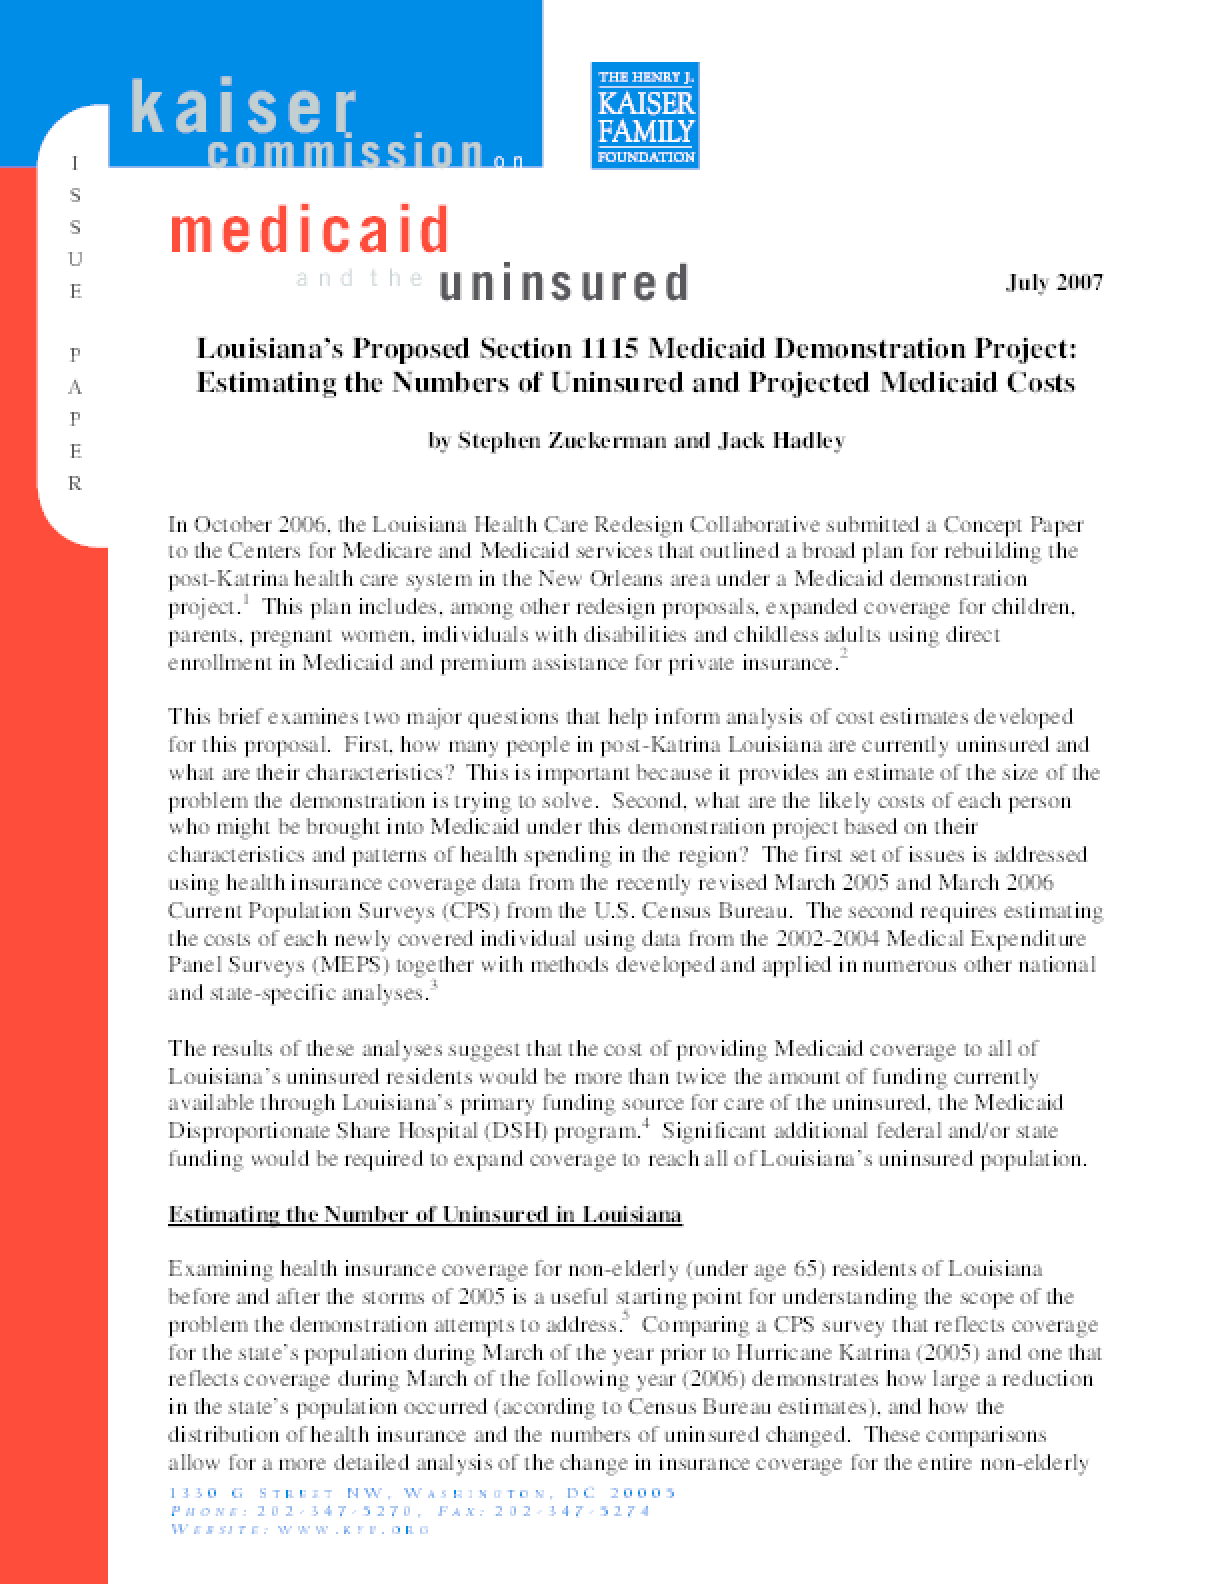 Louisiana's Proposed Section 1115 Medicaid Demonstration